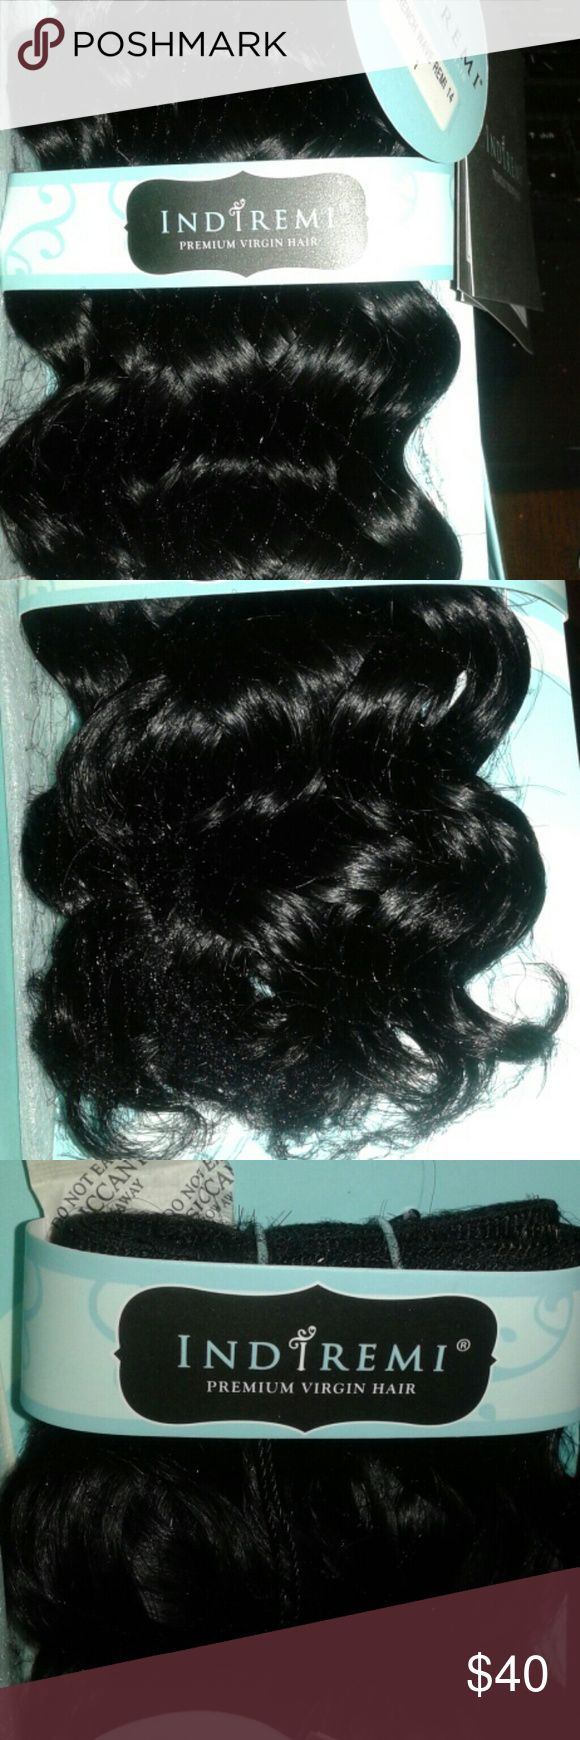 "Bobbi Boss Indiremi French Wave 14"" #1 Never unwrapped & in its original package with tags. Color is #1(Jet Black). Can be washed numerous times. It can also be flat-ironed, hot curled, blow-dried, and roller set. 14"" in length. When wet, those chunky curls relax into a relaxed & wavy look. Bobbi Boss  Accessories Hair Accessories"